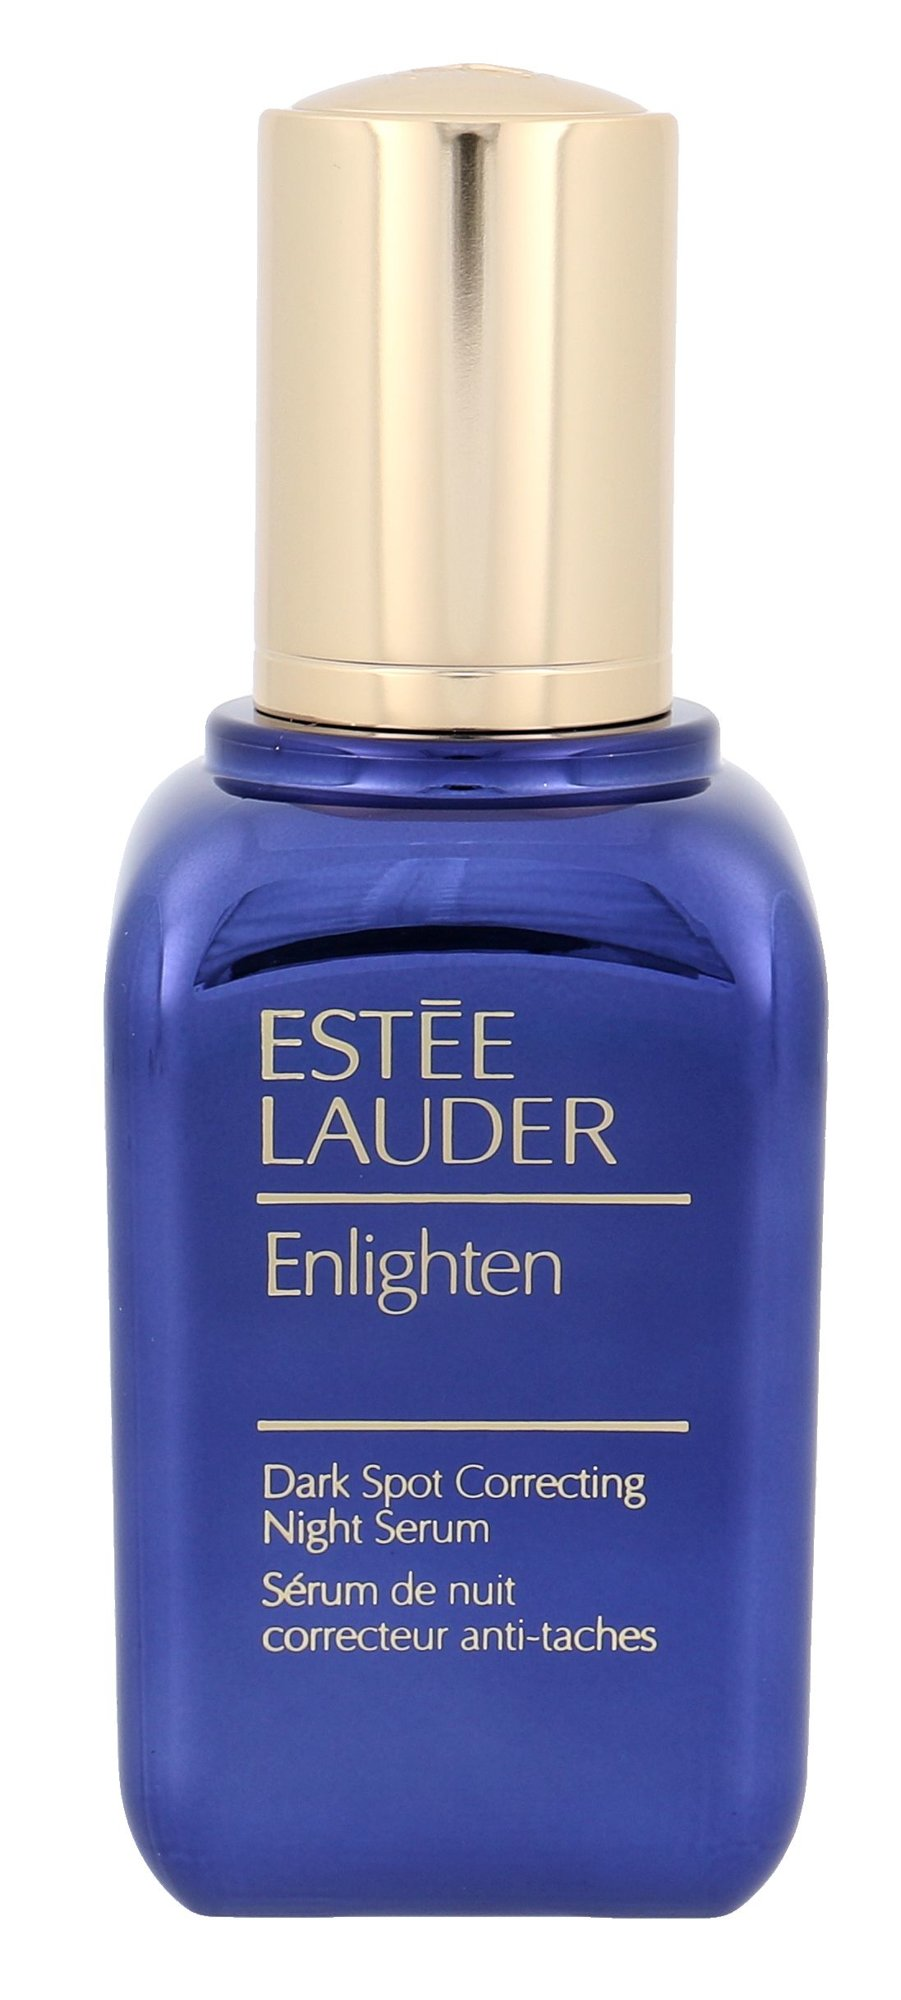 Estée Lauder Enlighten Skintone Correcting Night Serum Cosmetic 75ml